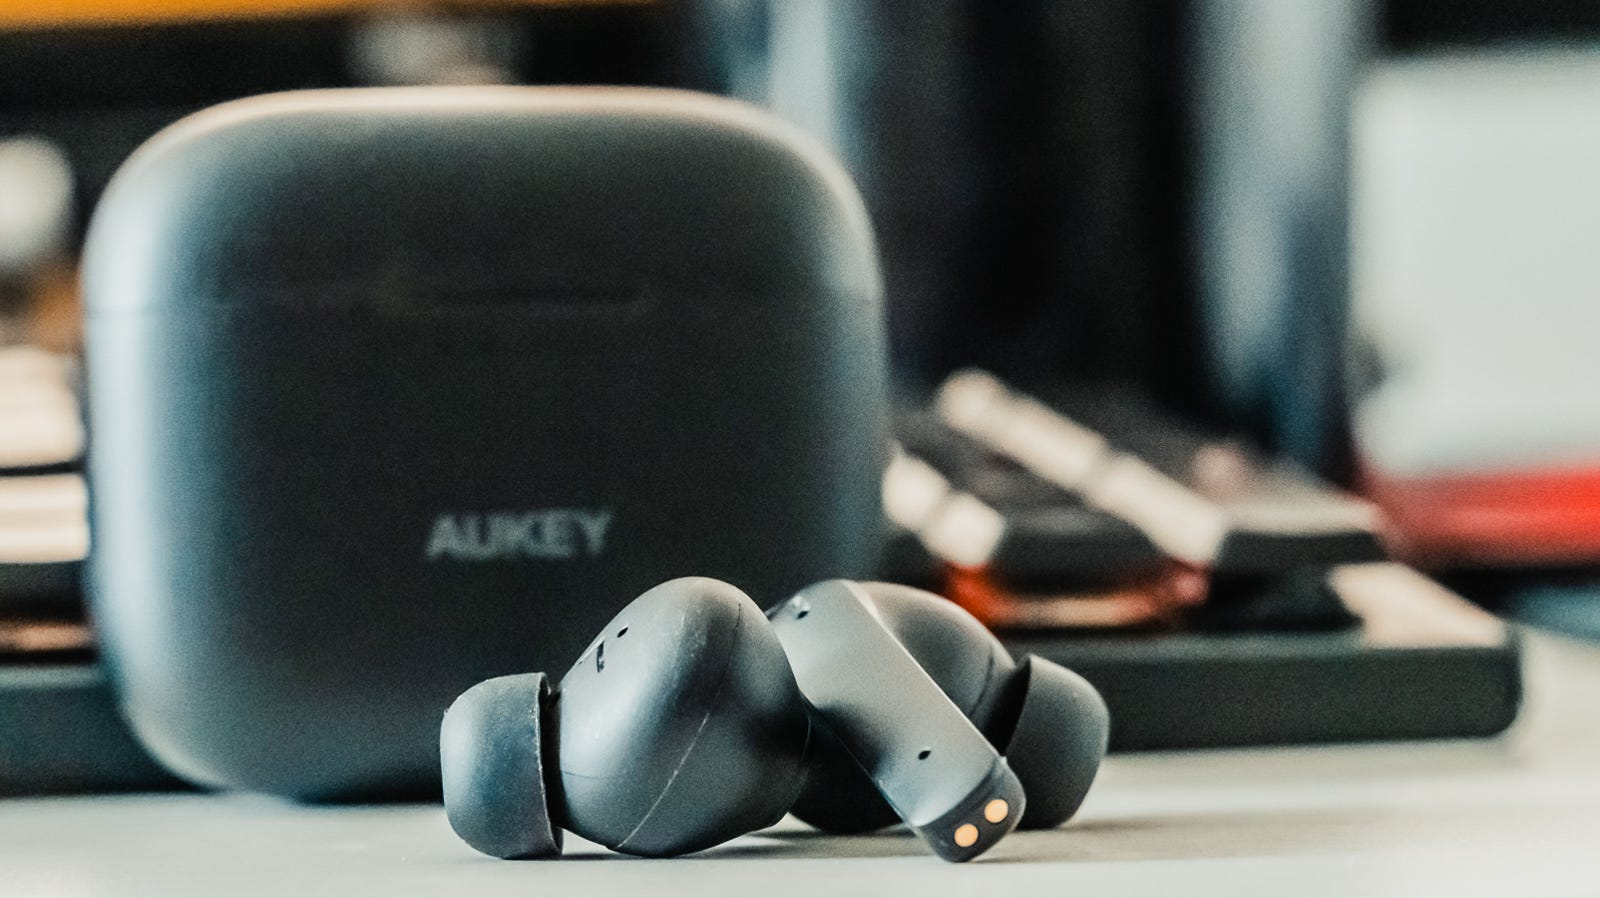 Illustration for article titled Aukey's EP-N5 True Wireless Earbuds Offer Great ANC Performance for Under $50